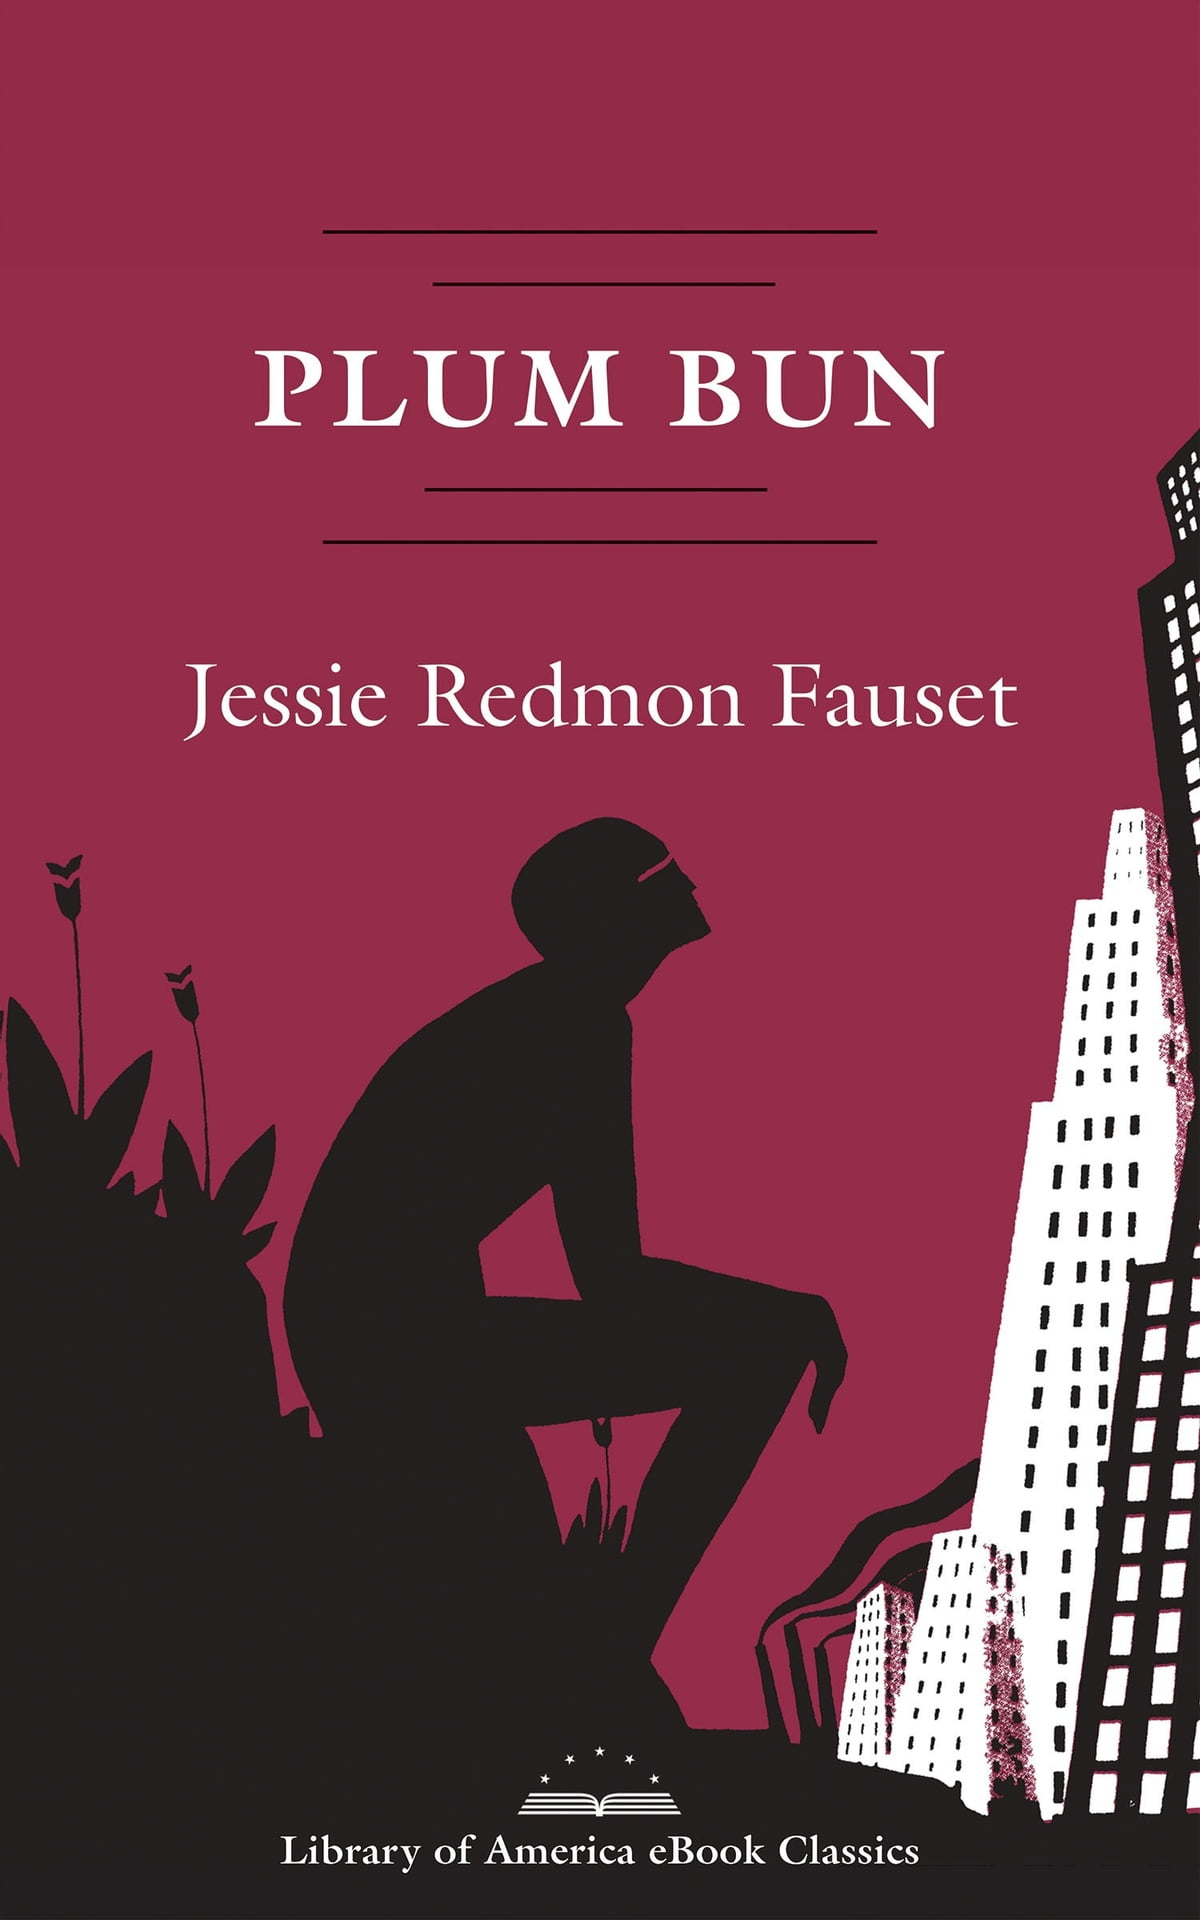 Plum bun a novel without a moral ebook by jessie redmon fauset plum bun a novel without a moral ebook by jessie redmon fauset 9781598535754 rakuten kobo fandeluxe Images